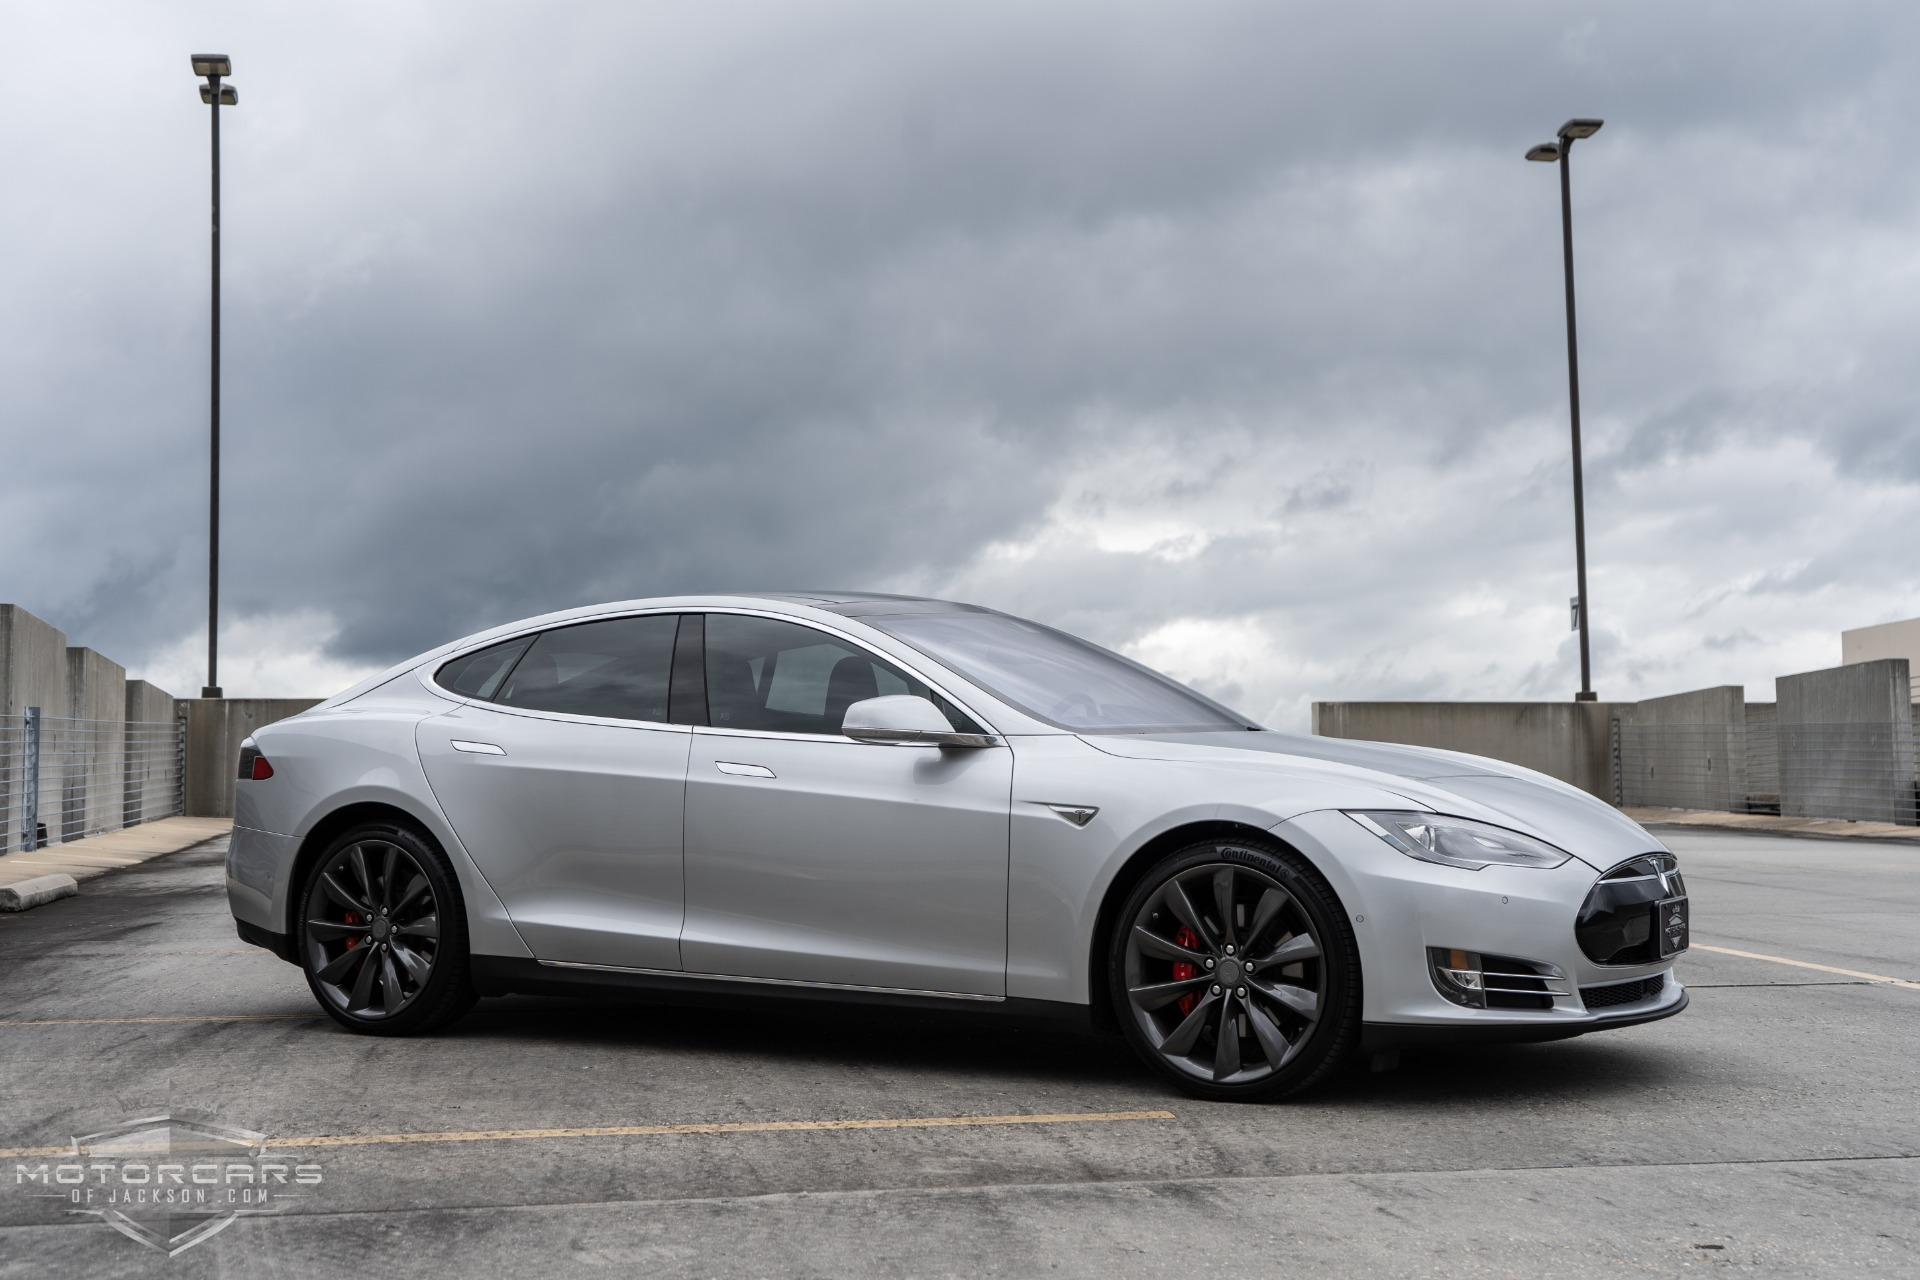 Used-2015-Tesla-Model-S-P90D-Ludicrous-for-sale-Jackson-MS